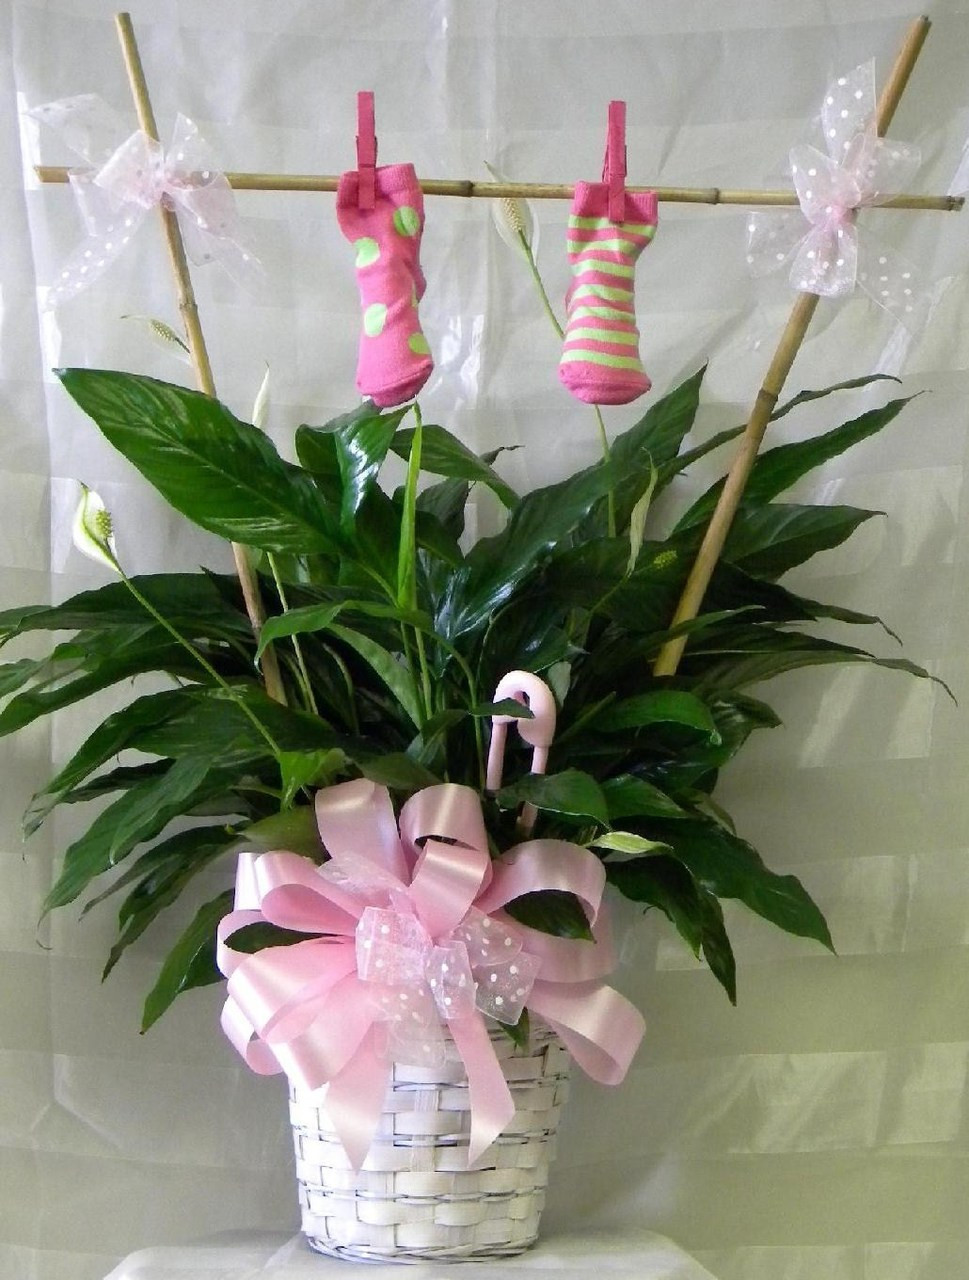 New Baby Gift Green Plant - New Baby Gift Flowers